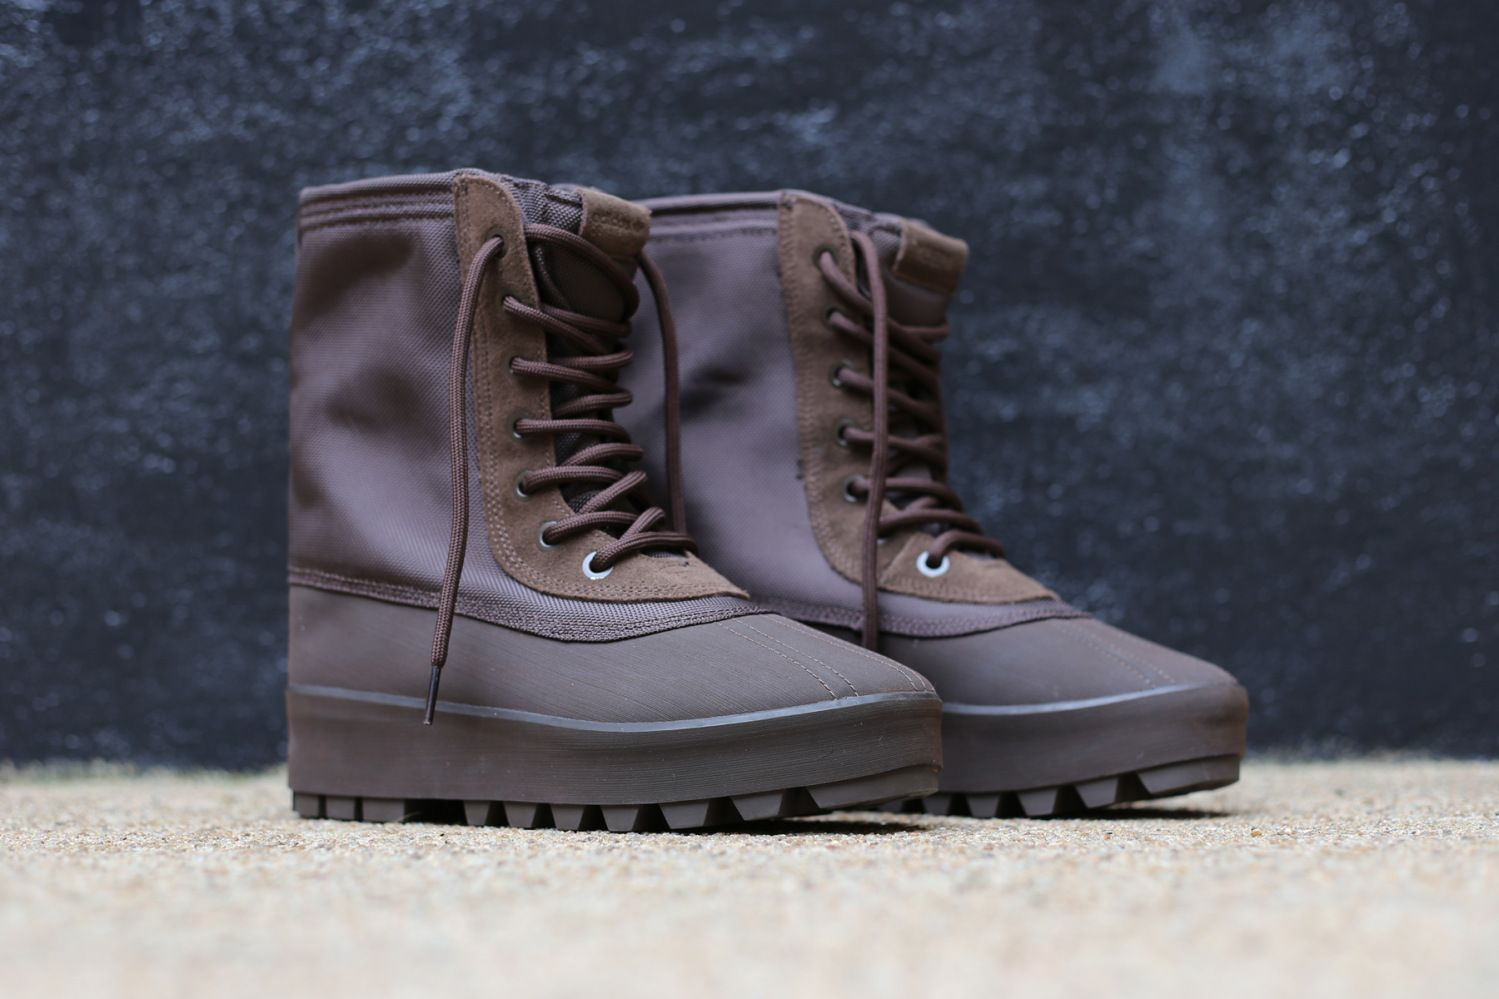 A Closer Look At The Yeezy 950 Boot Yeezy Boots Boots Adidas Yeezy 950